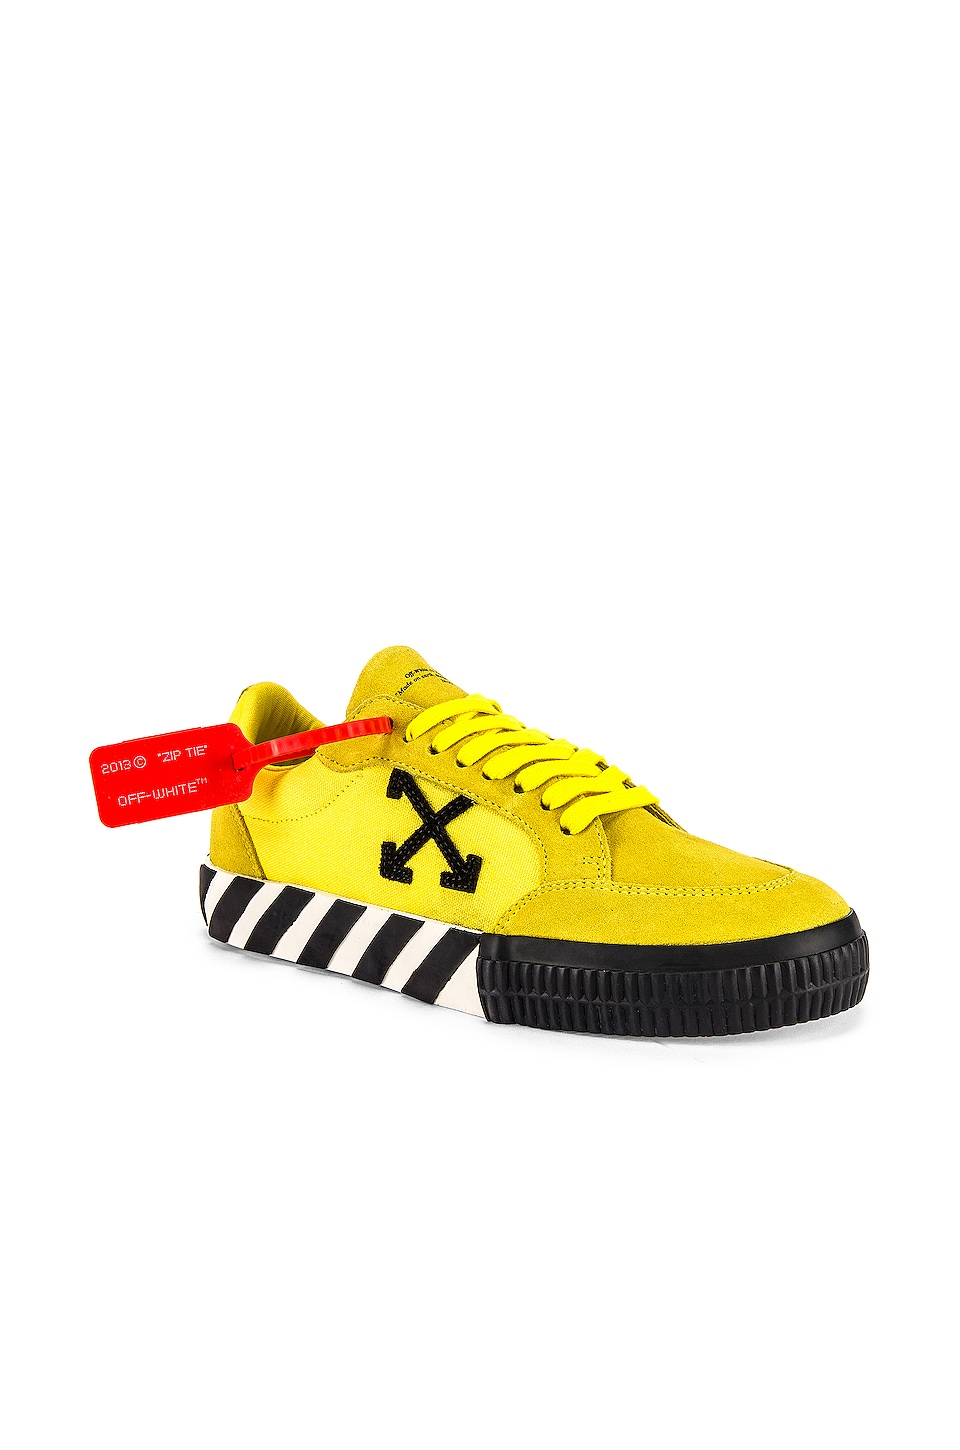 OFF-WHITE ZAPATILLA DEPORTIVA LOW VULCANIZED